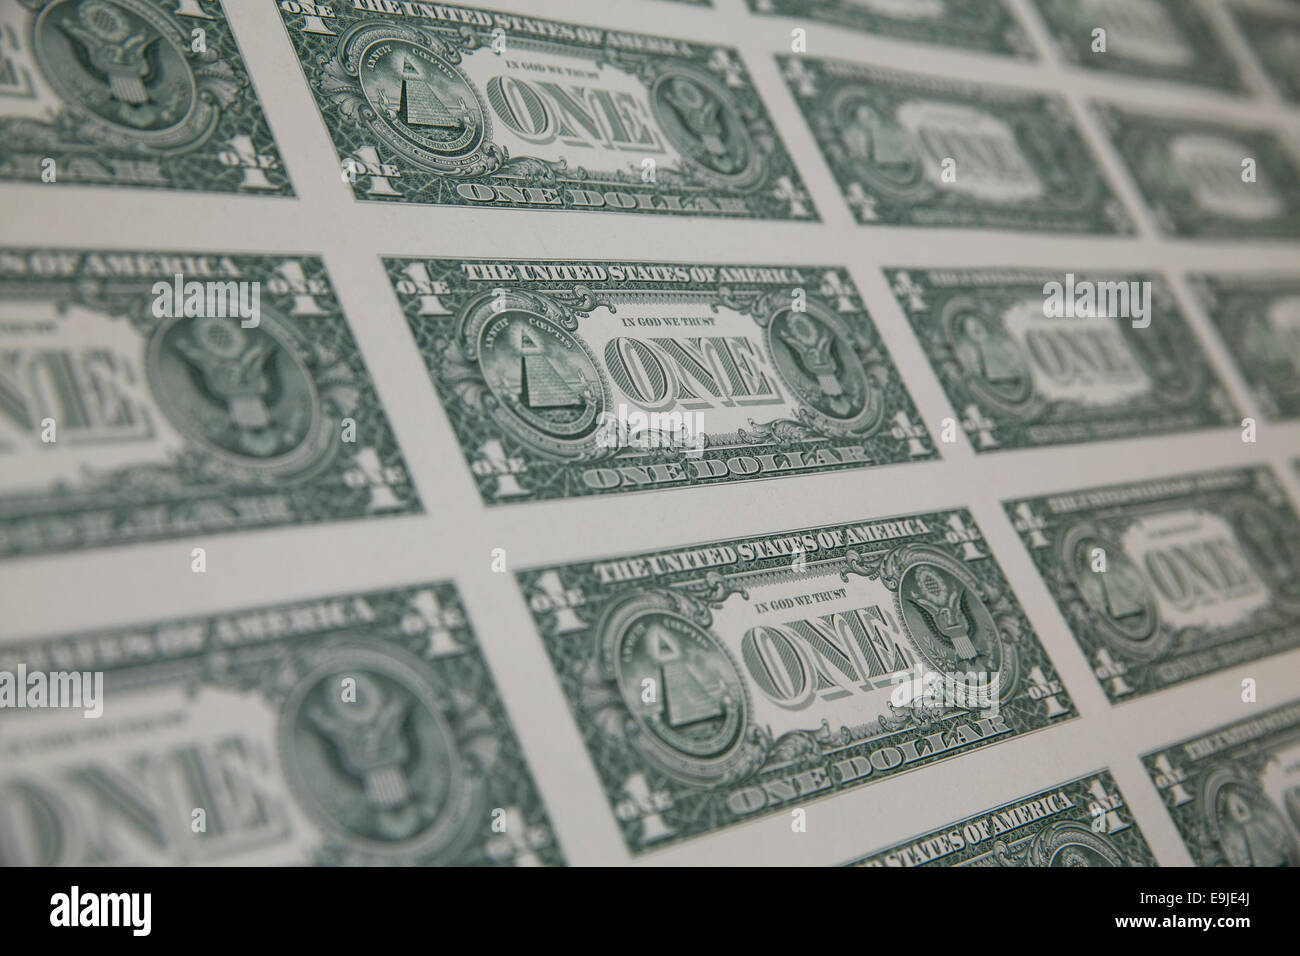 Uncut sheets of United States One Dollar ($1) bills during production at the Bureau of Engraving and Printing in - Stock Image